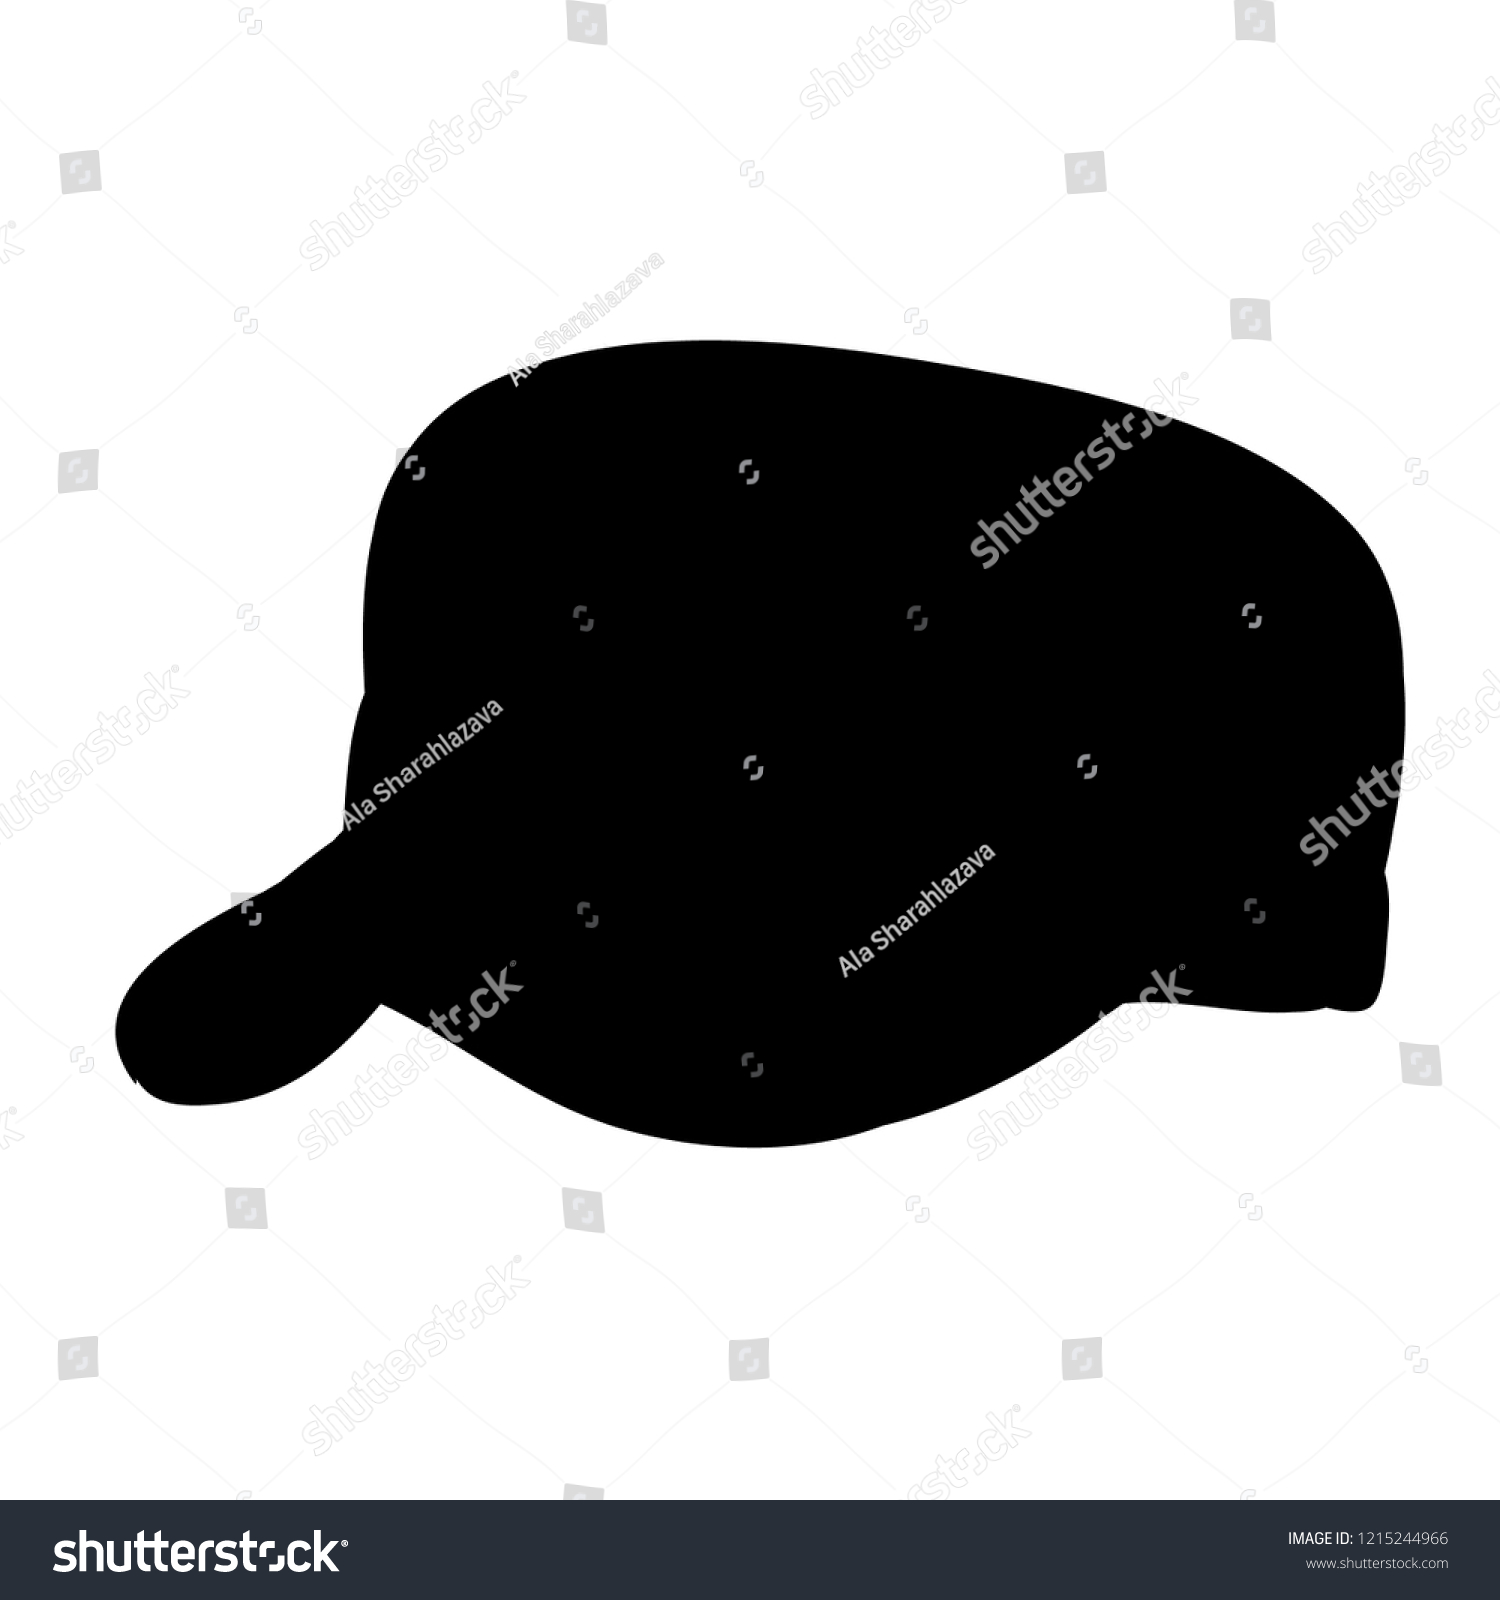 White Background Black Silhouette Mans Hat Stock Vector (Royalty ... ccb2766b360